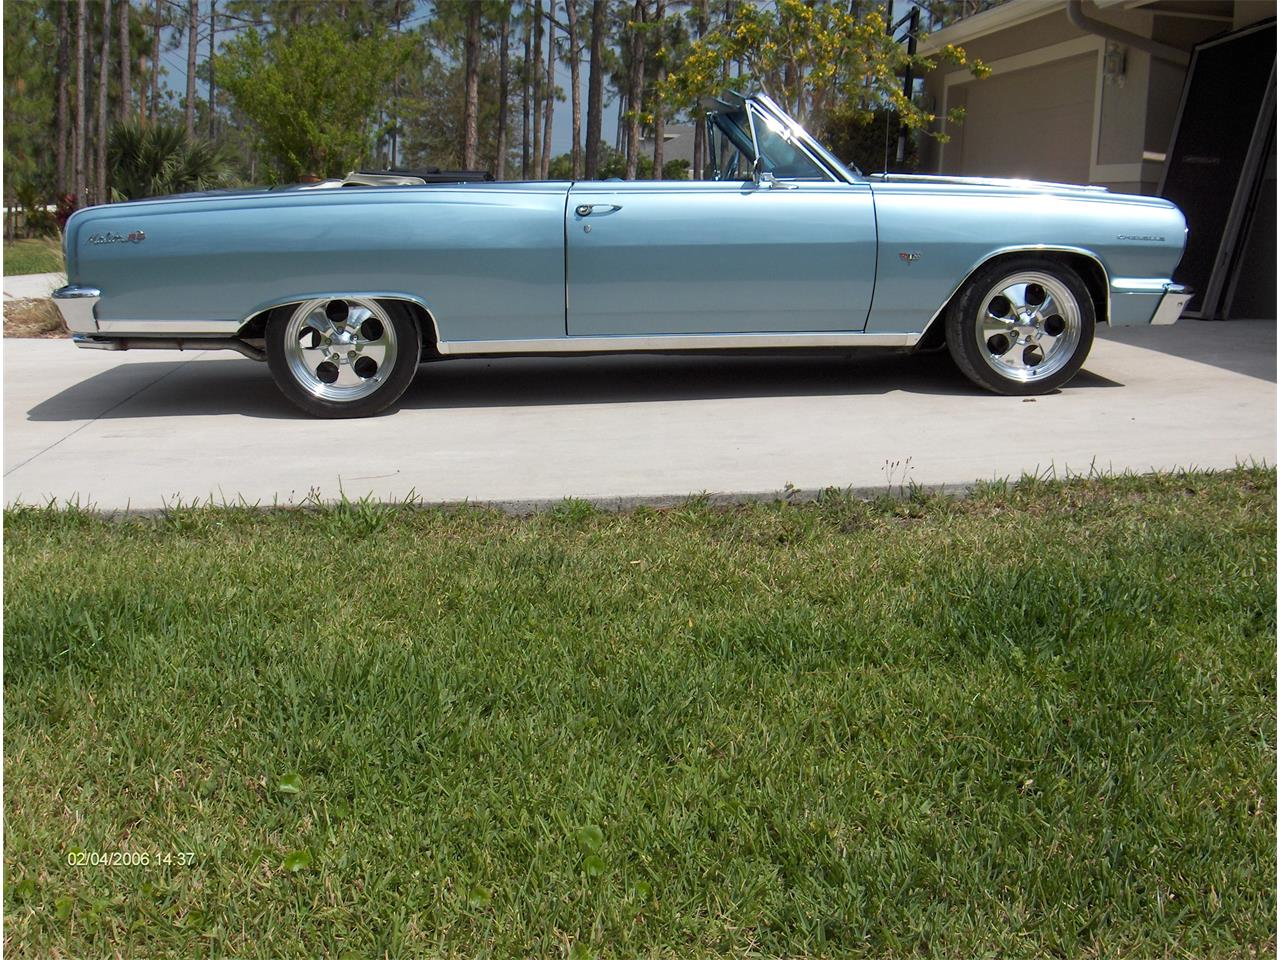 1964 Chevrolet Chevelle Malibu SS (CC-1201229) for sale in Loxahatchee, Florida